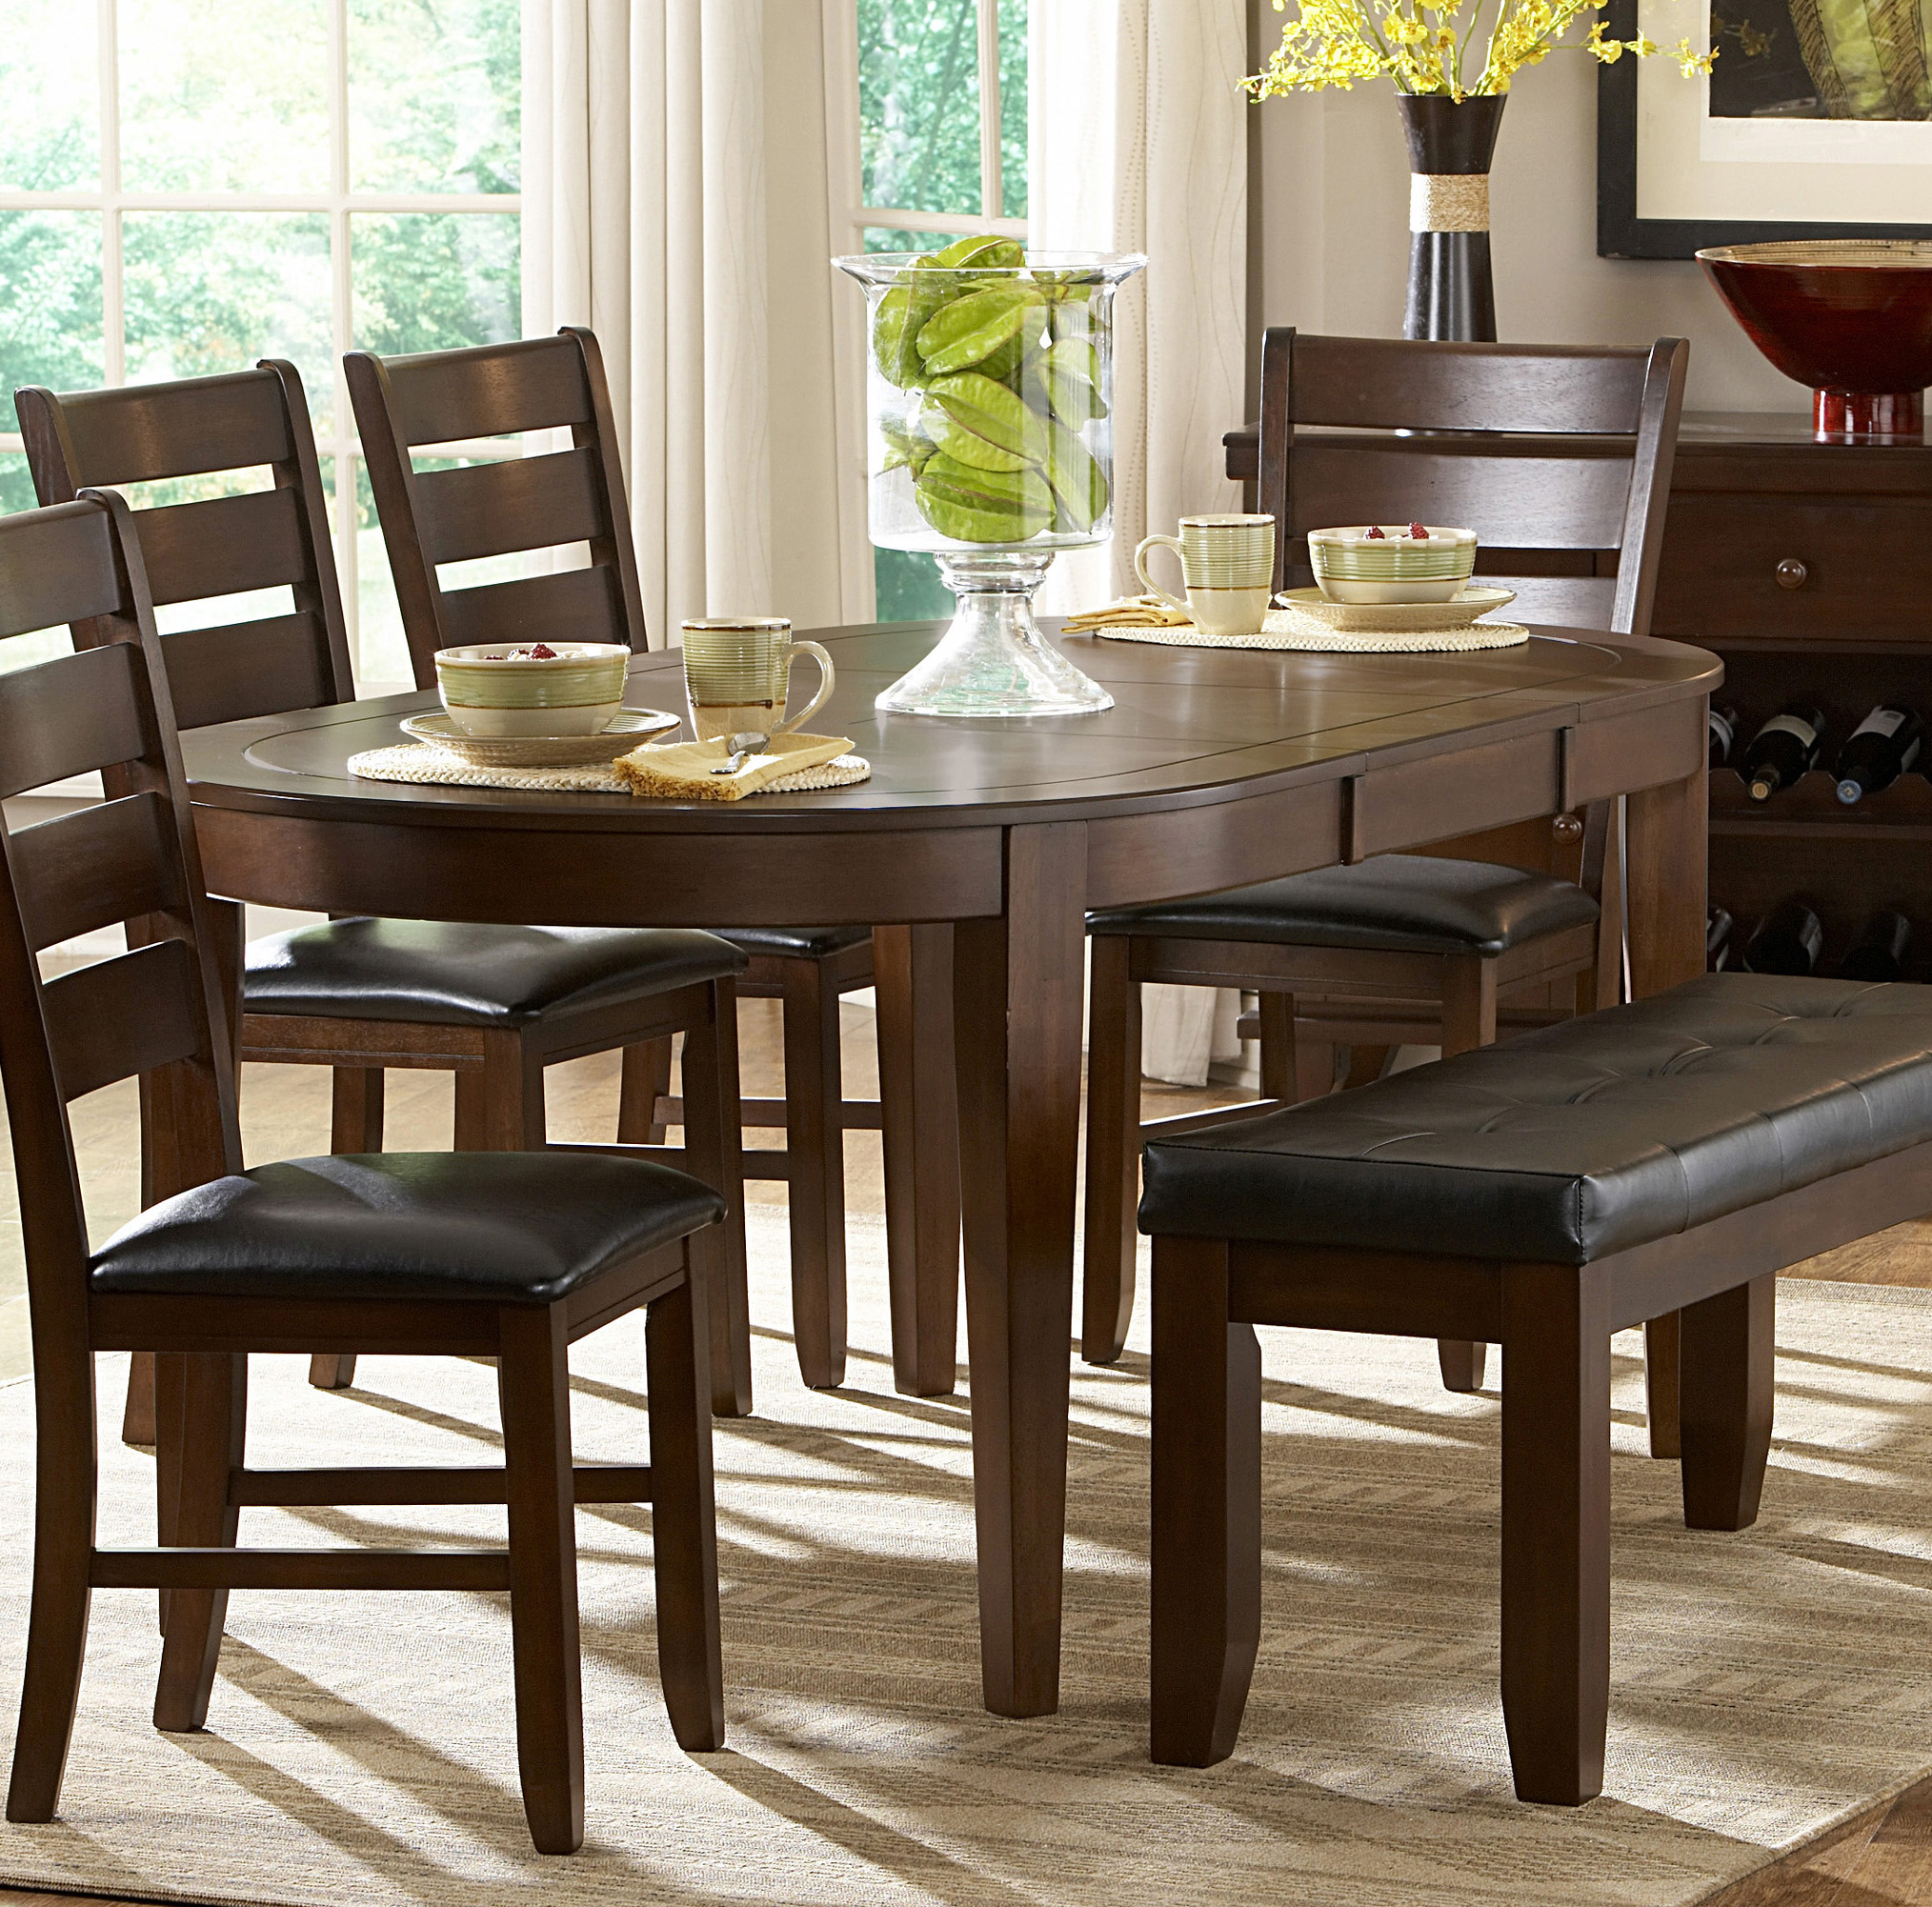 Oval Dining Room Table: Homelegance Ameillia Dark Oak Oval Dining Table Dallas TX